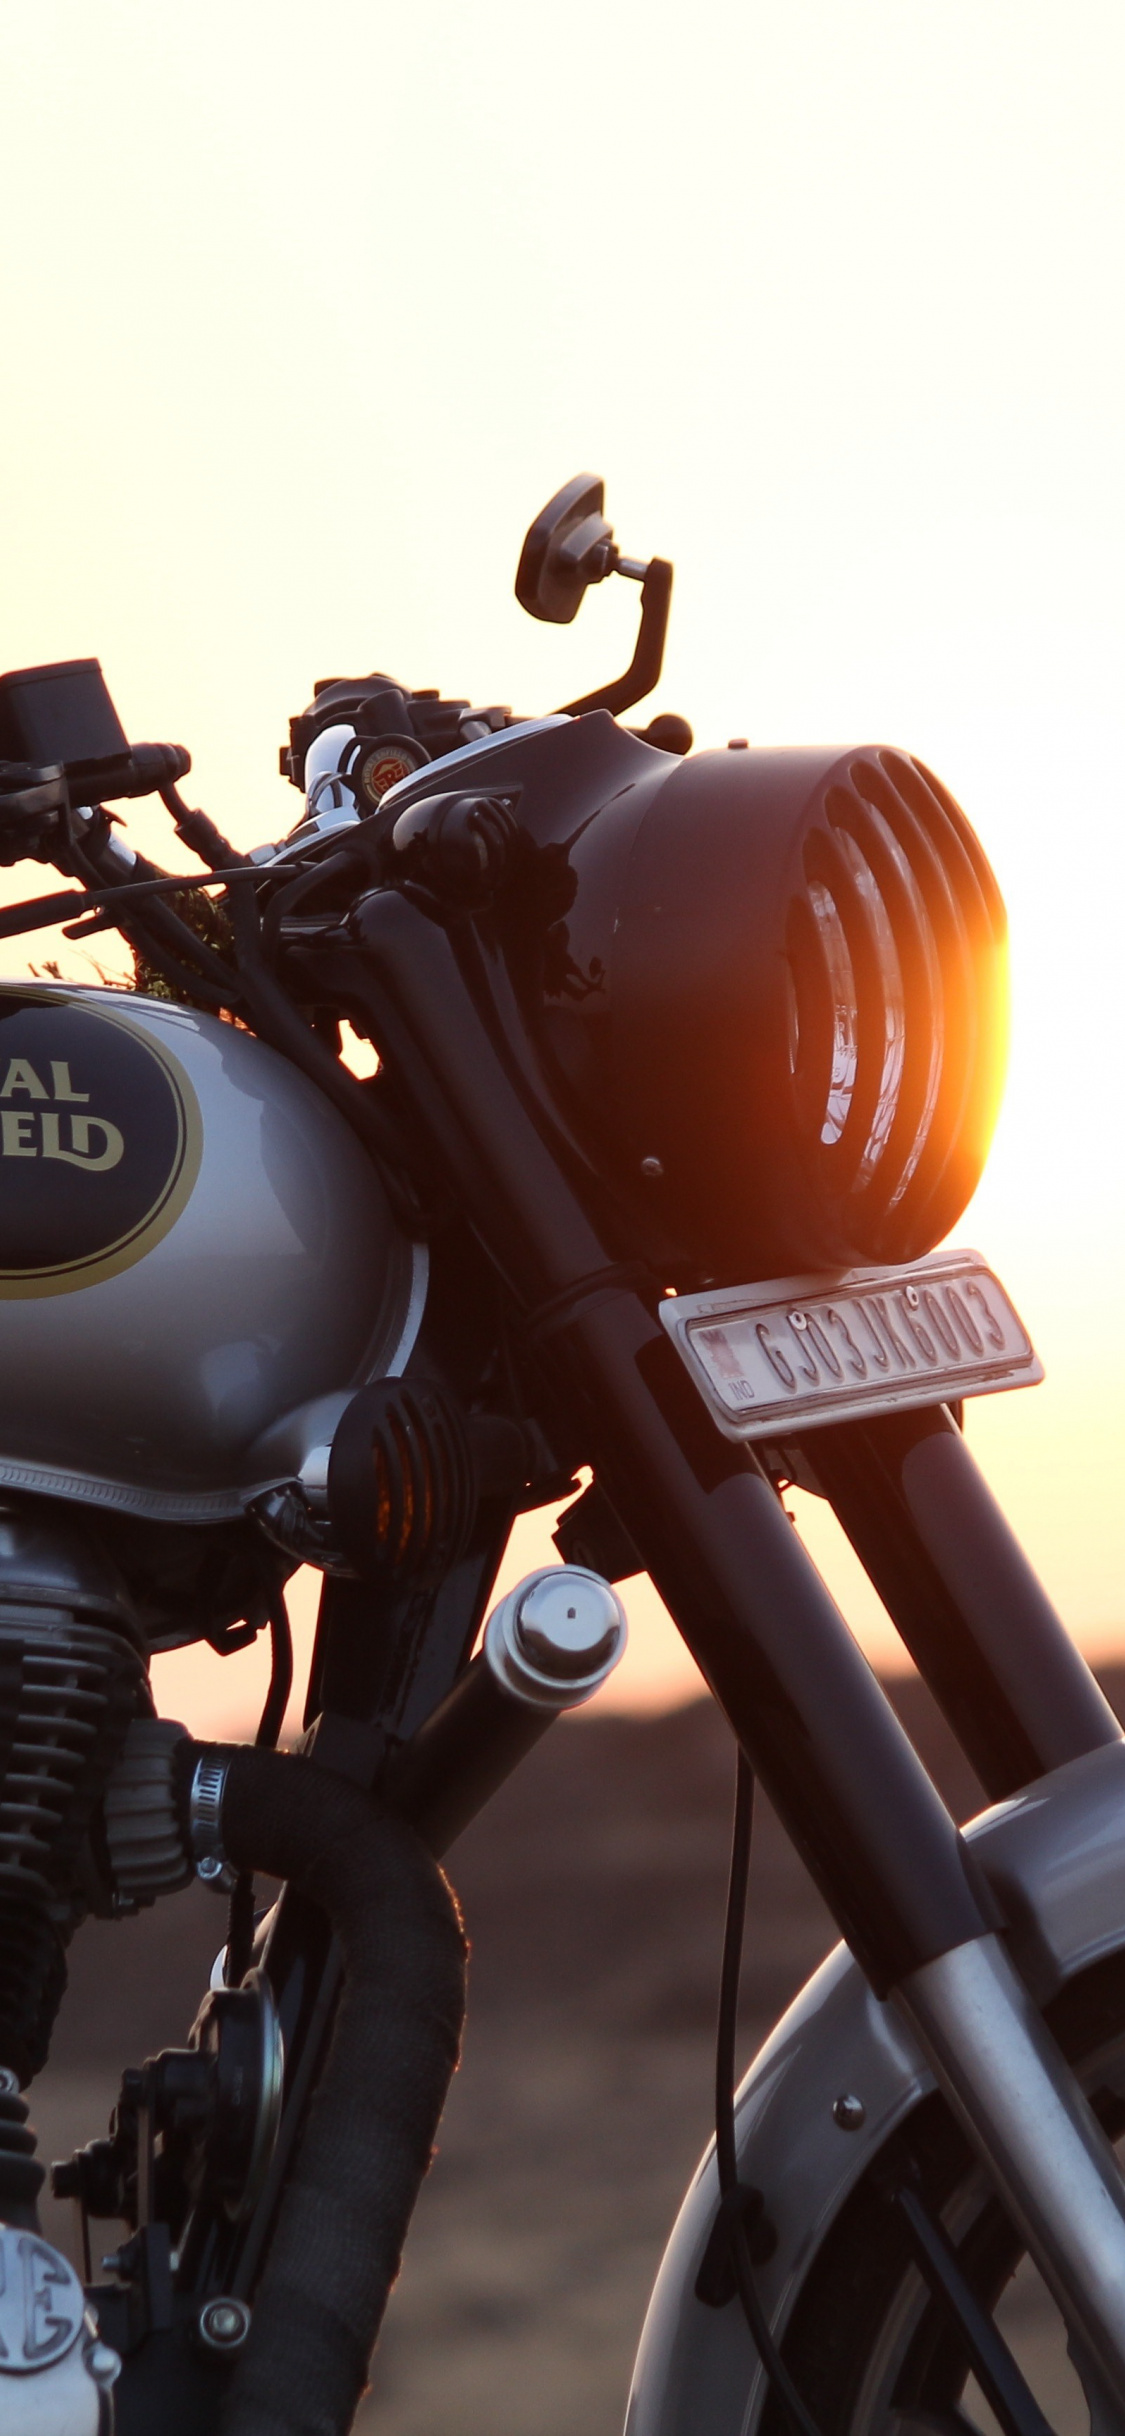 Royal Enfield, Motorcycle, Wallpaper - Iphone Royal Enfield Wallpaper Hd , HD Wallpaper & Backgrounds